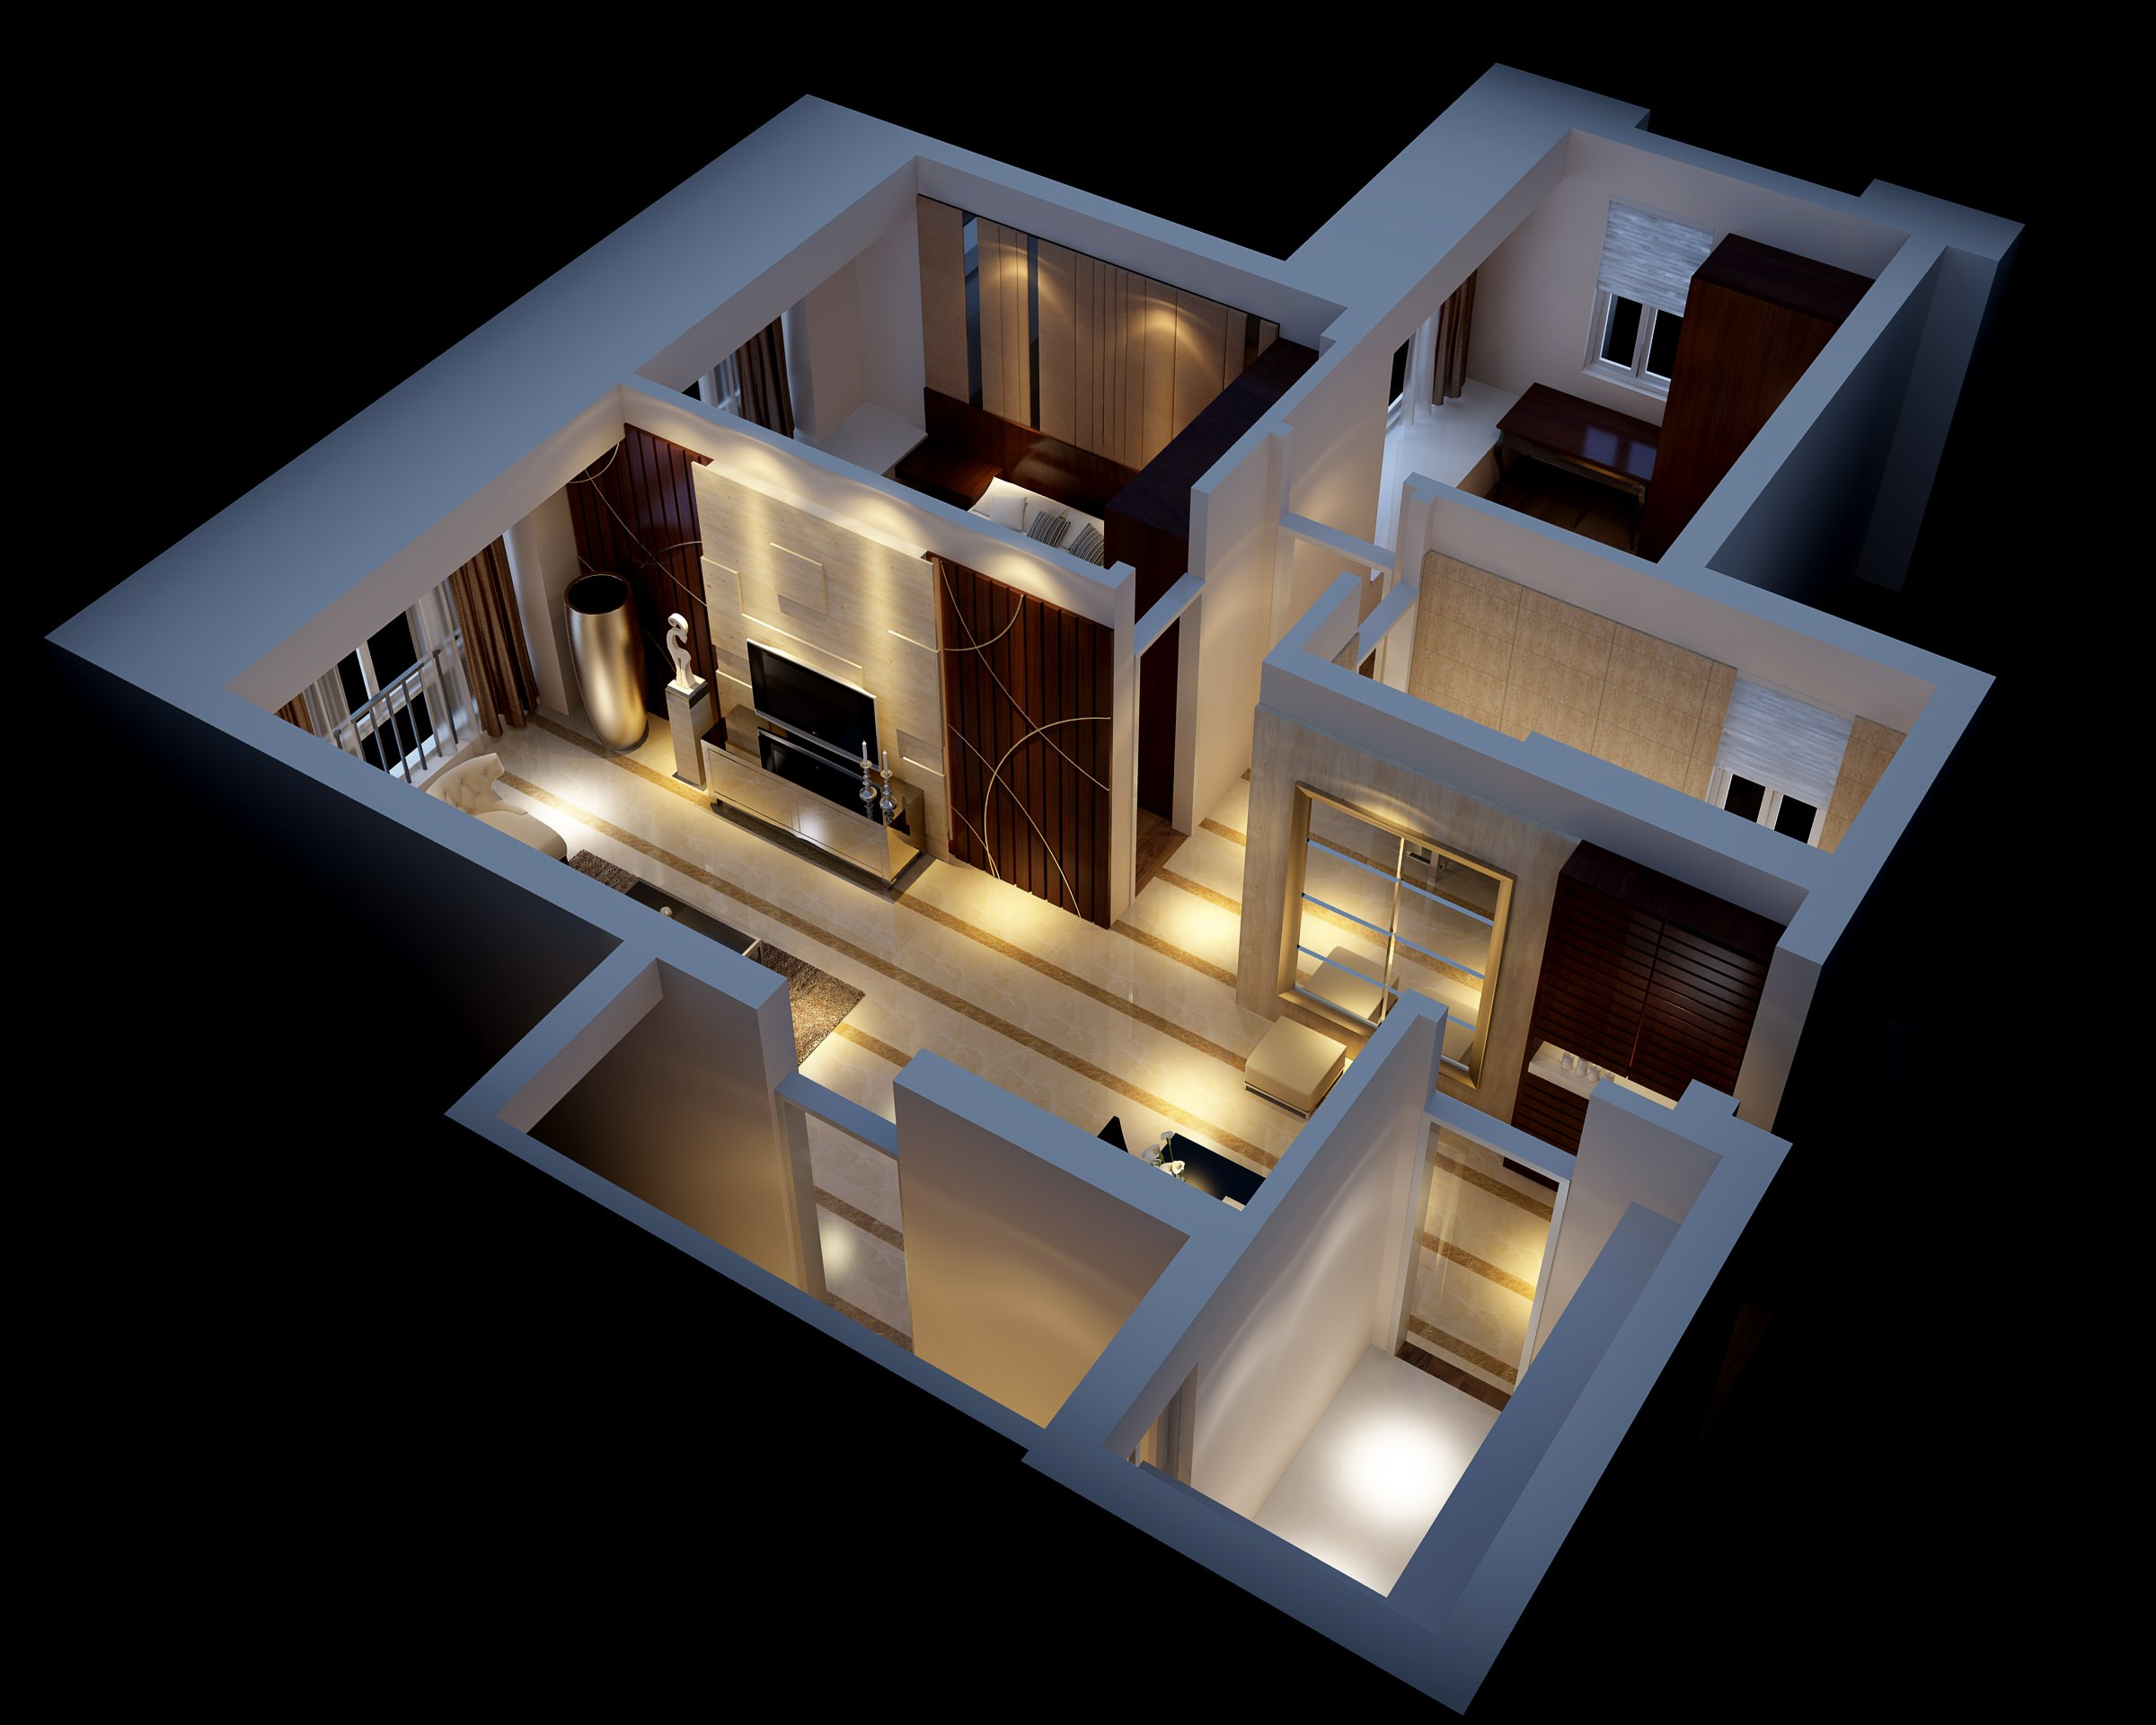 Modern house interior fully furnished 3d model max for House designs 3d model